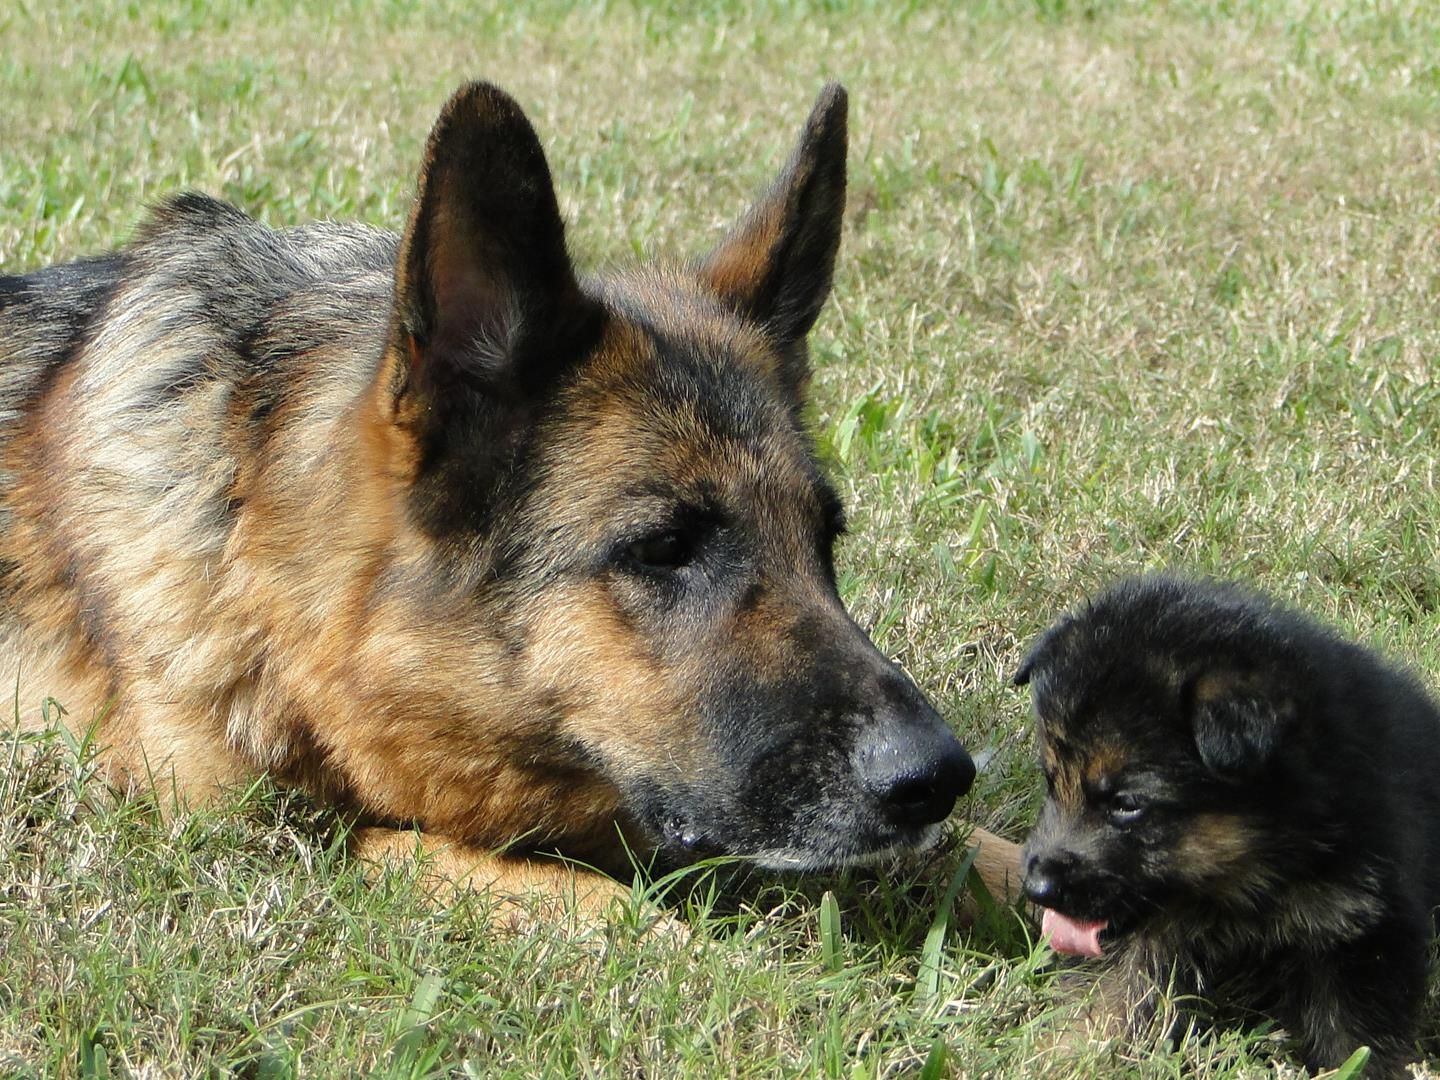 German Shepherd Breeder In Florida Is Dedicated To Producing Top